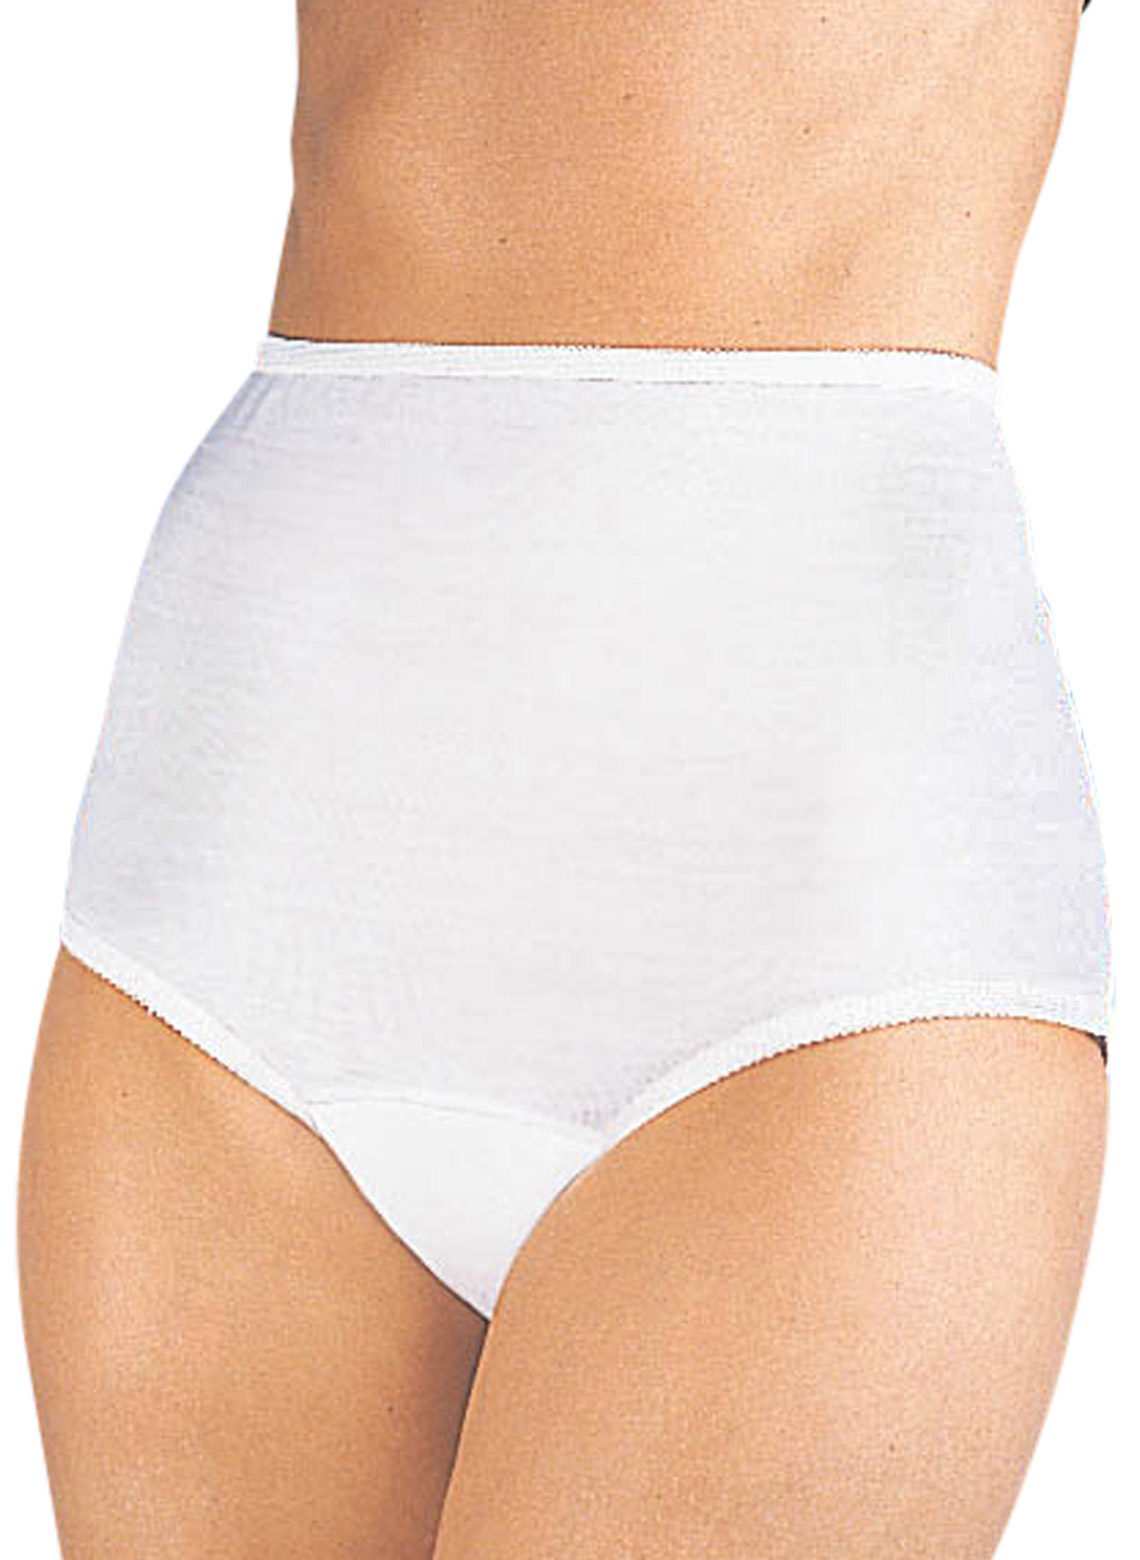 how to make incontinence underwear